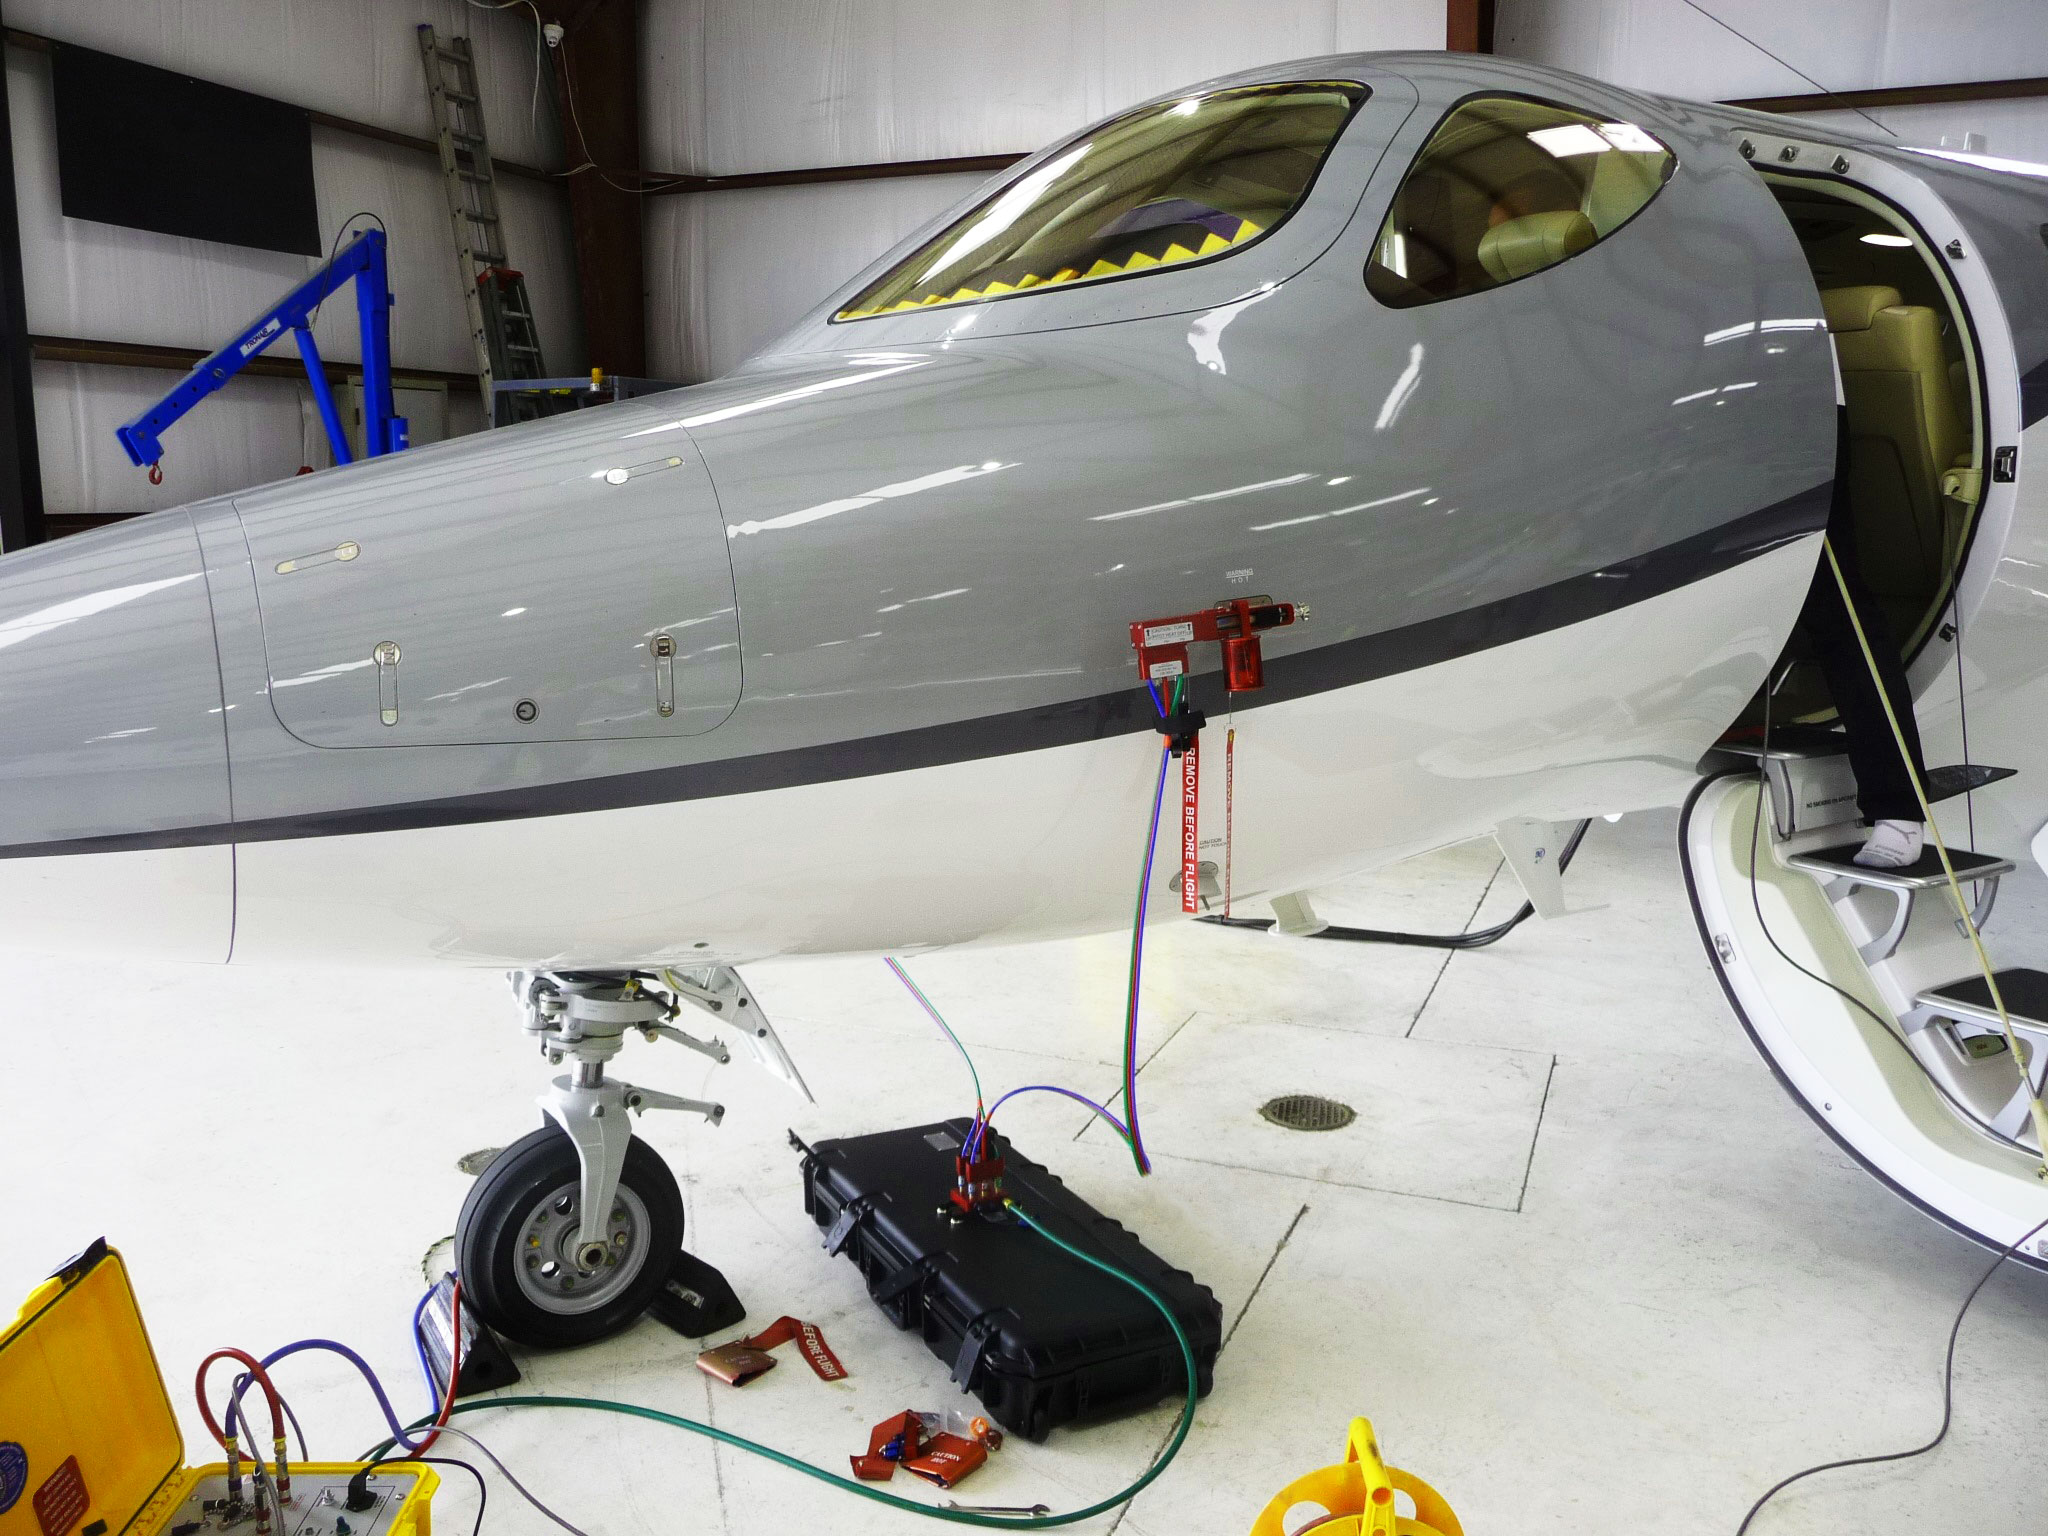 HondaJet KT1113 attached